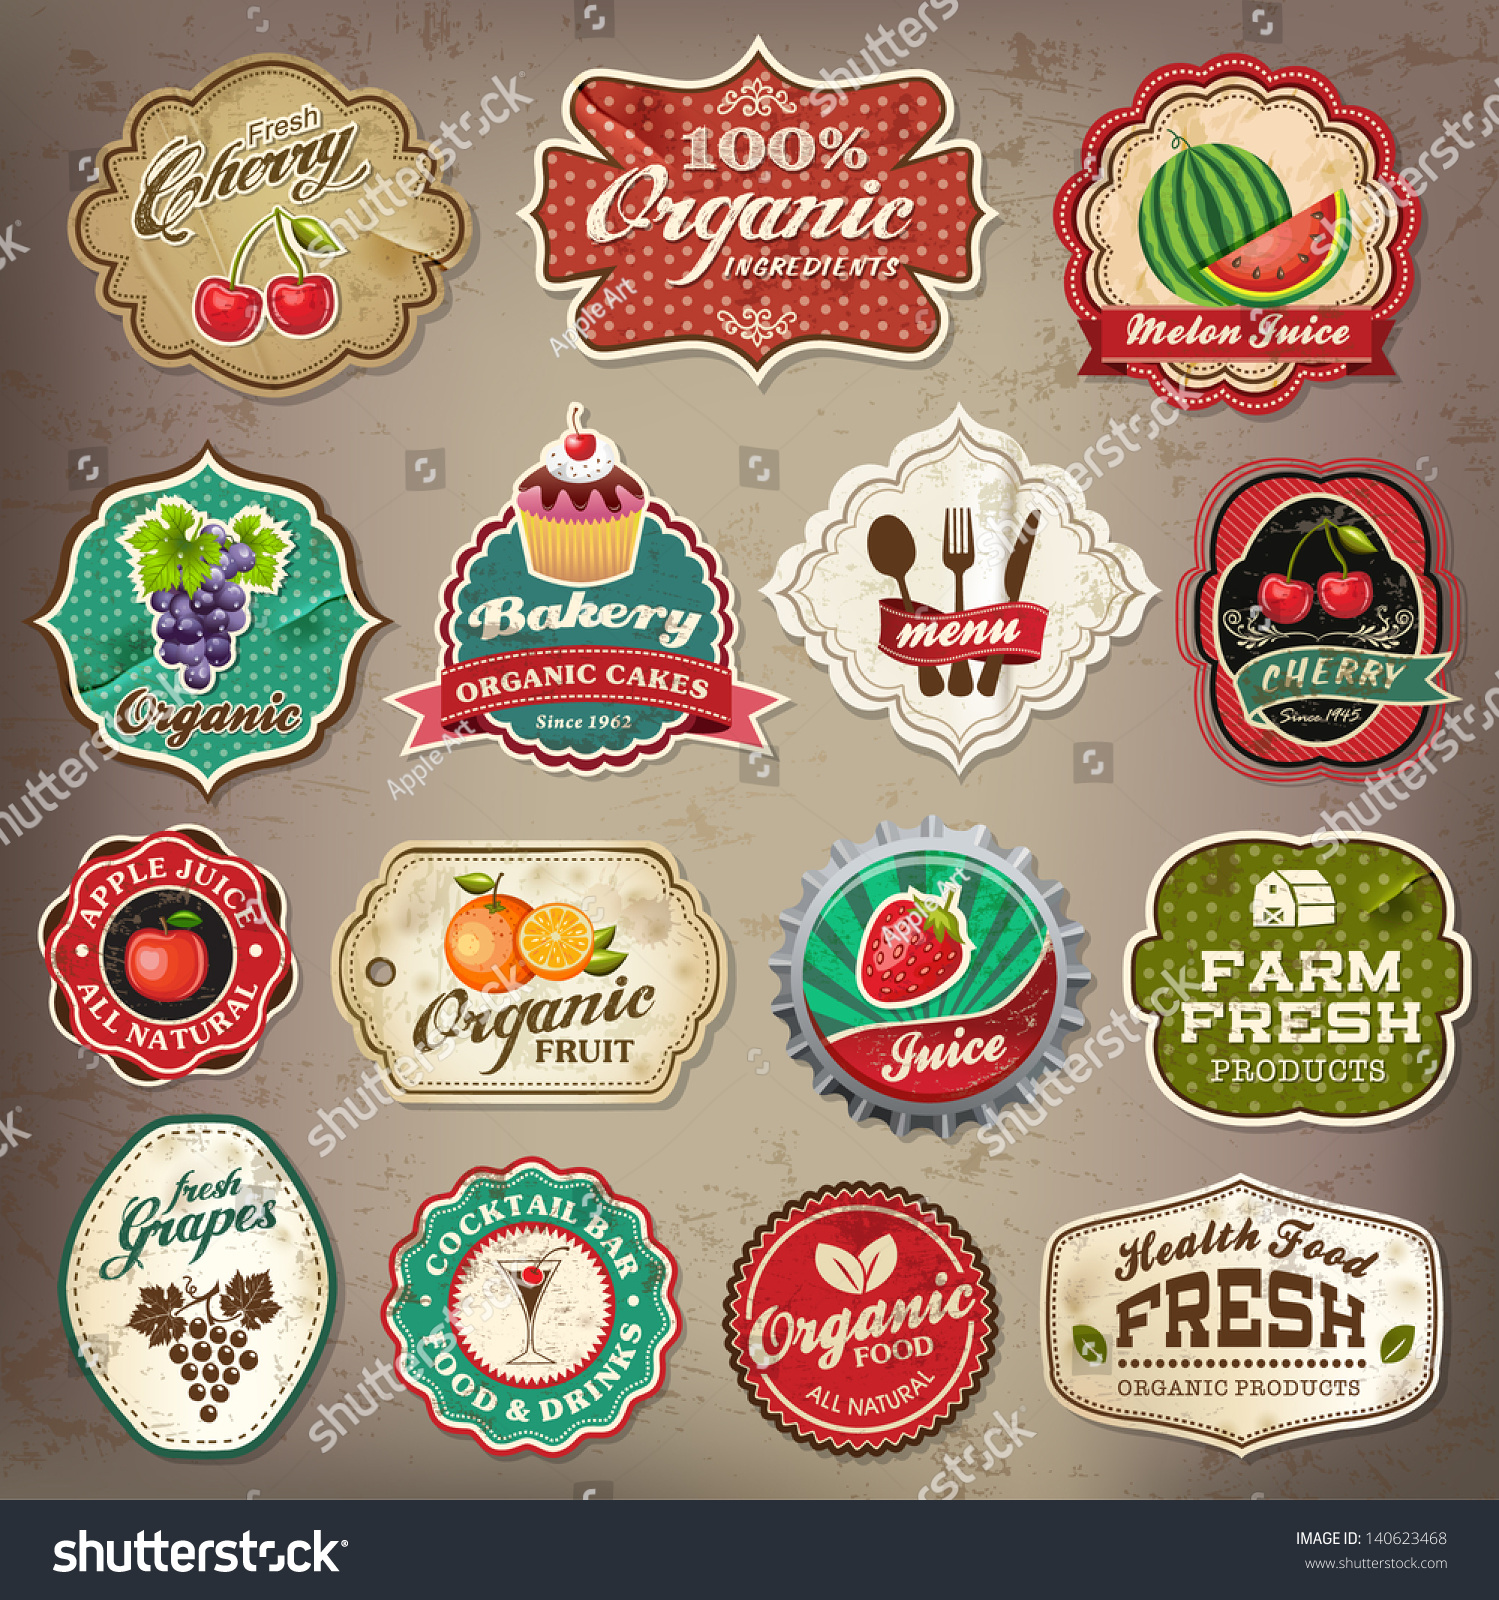 Vintage Retro Grunge Restaurant Organic Food Stock Vector ...